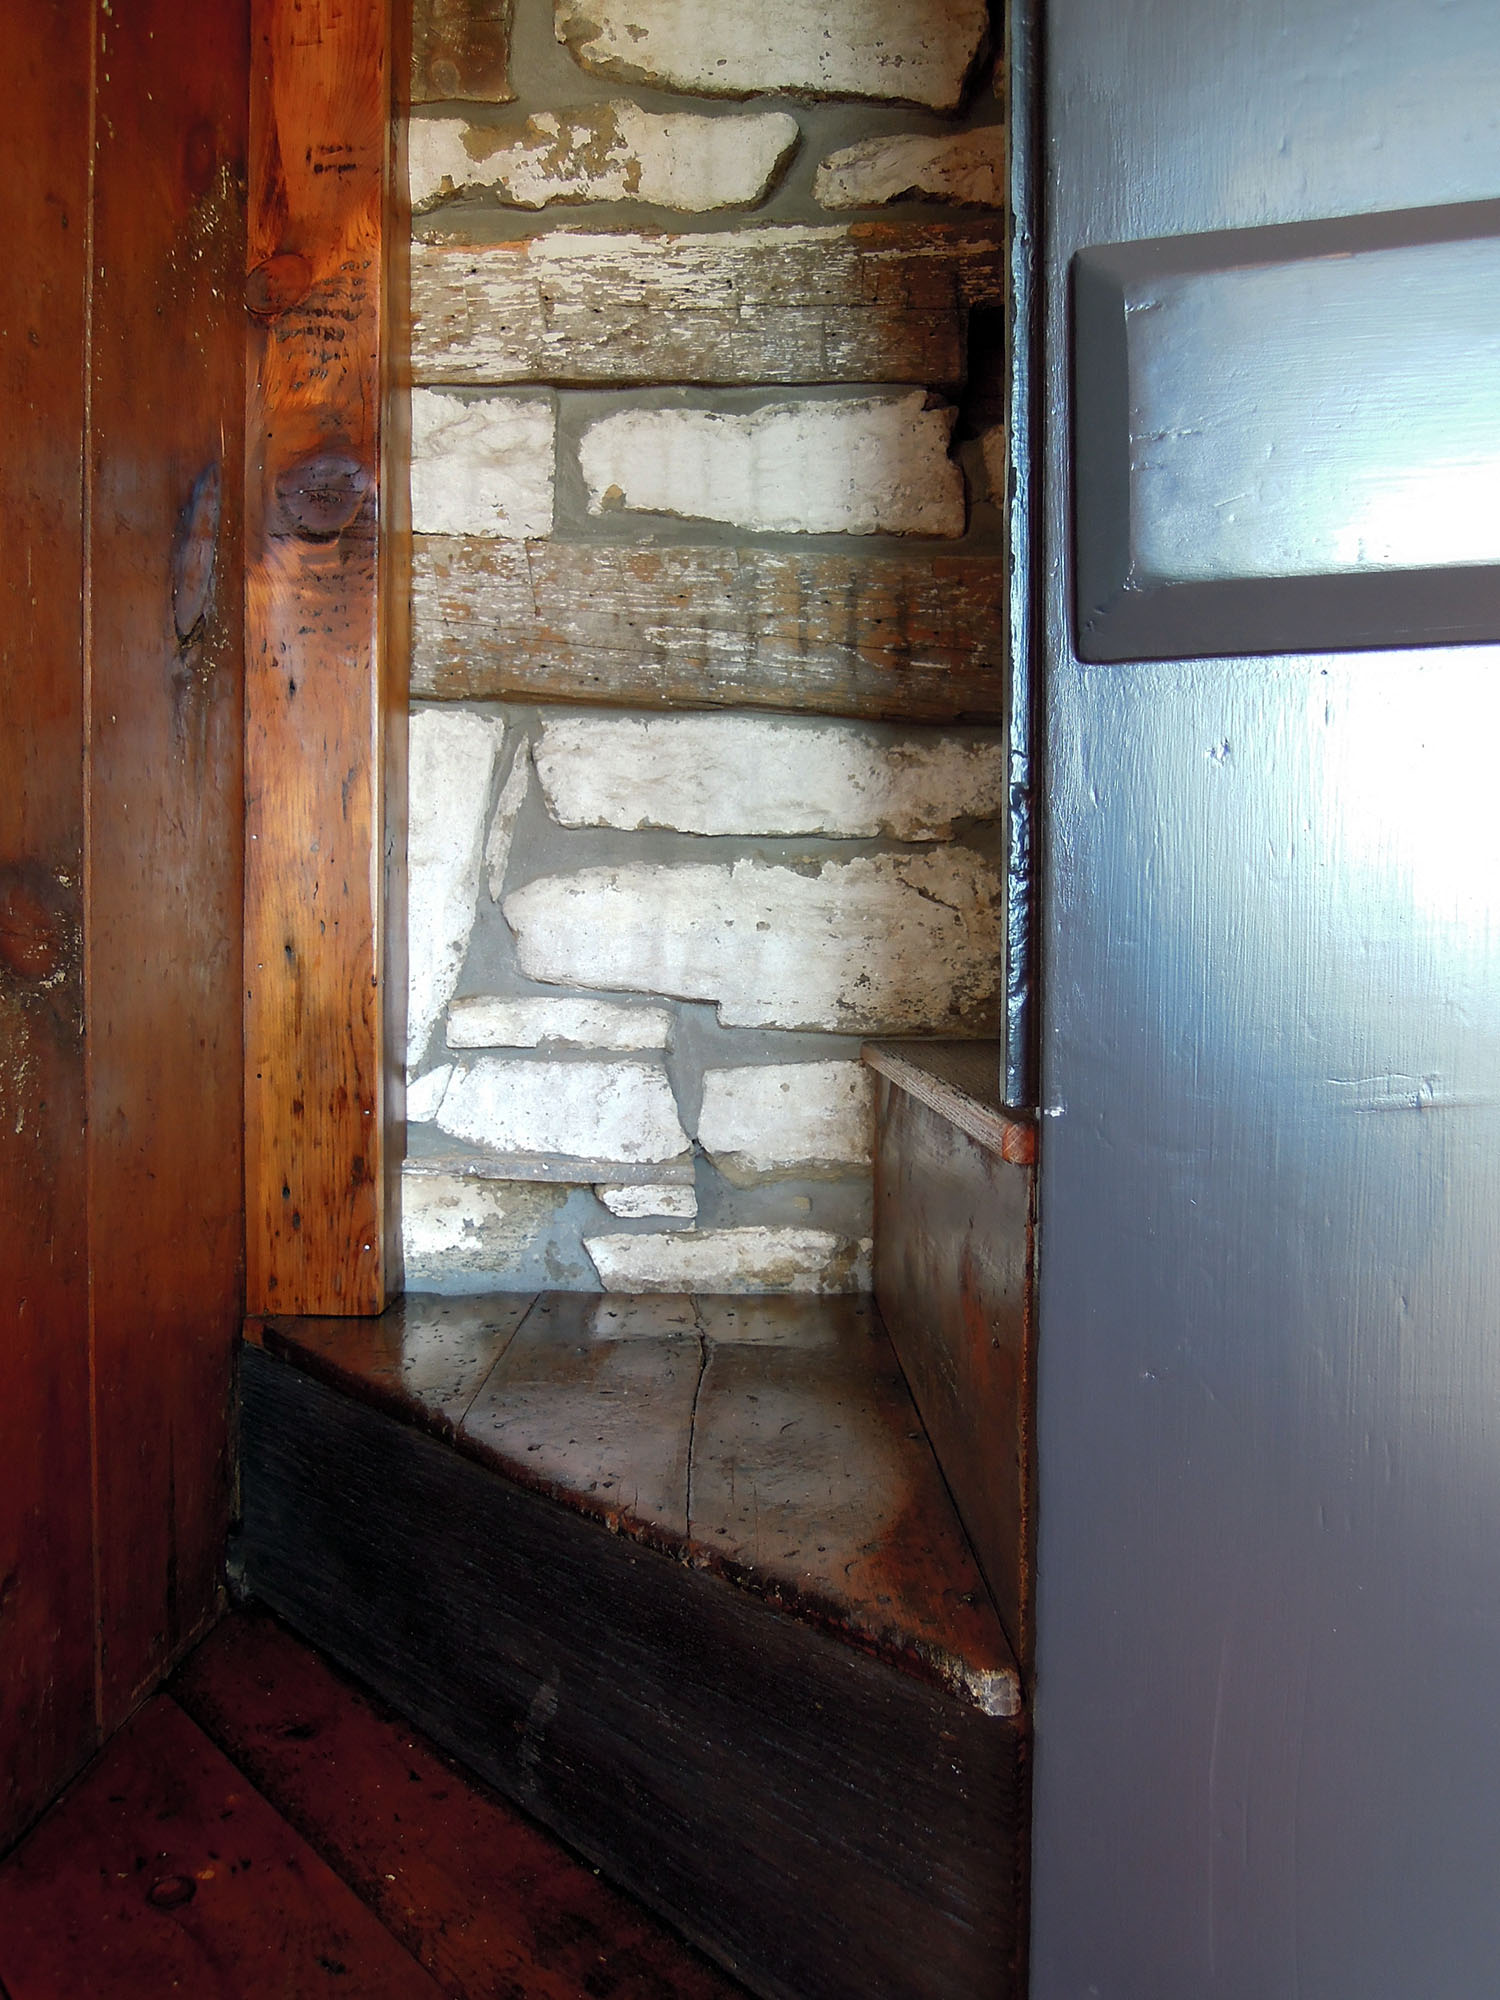 This old set of stairs was unused and not structurally sound. We modified the stairs and in the process found this great section of the chimney exposed in the staircase.